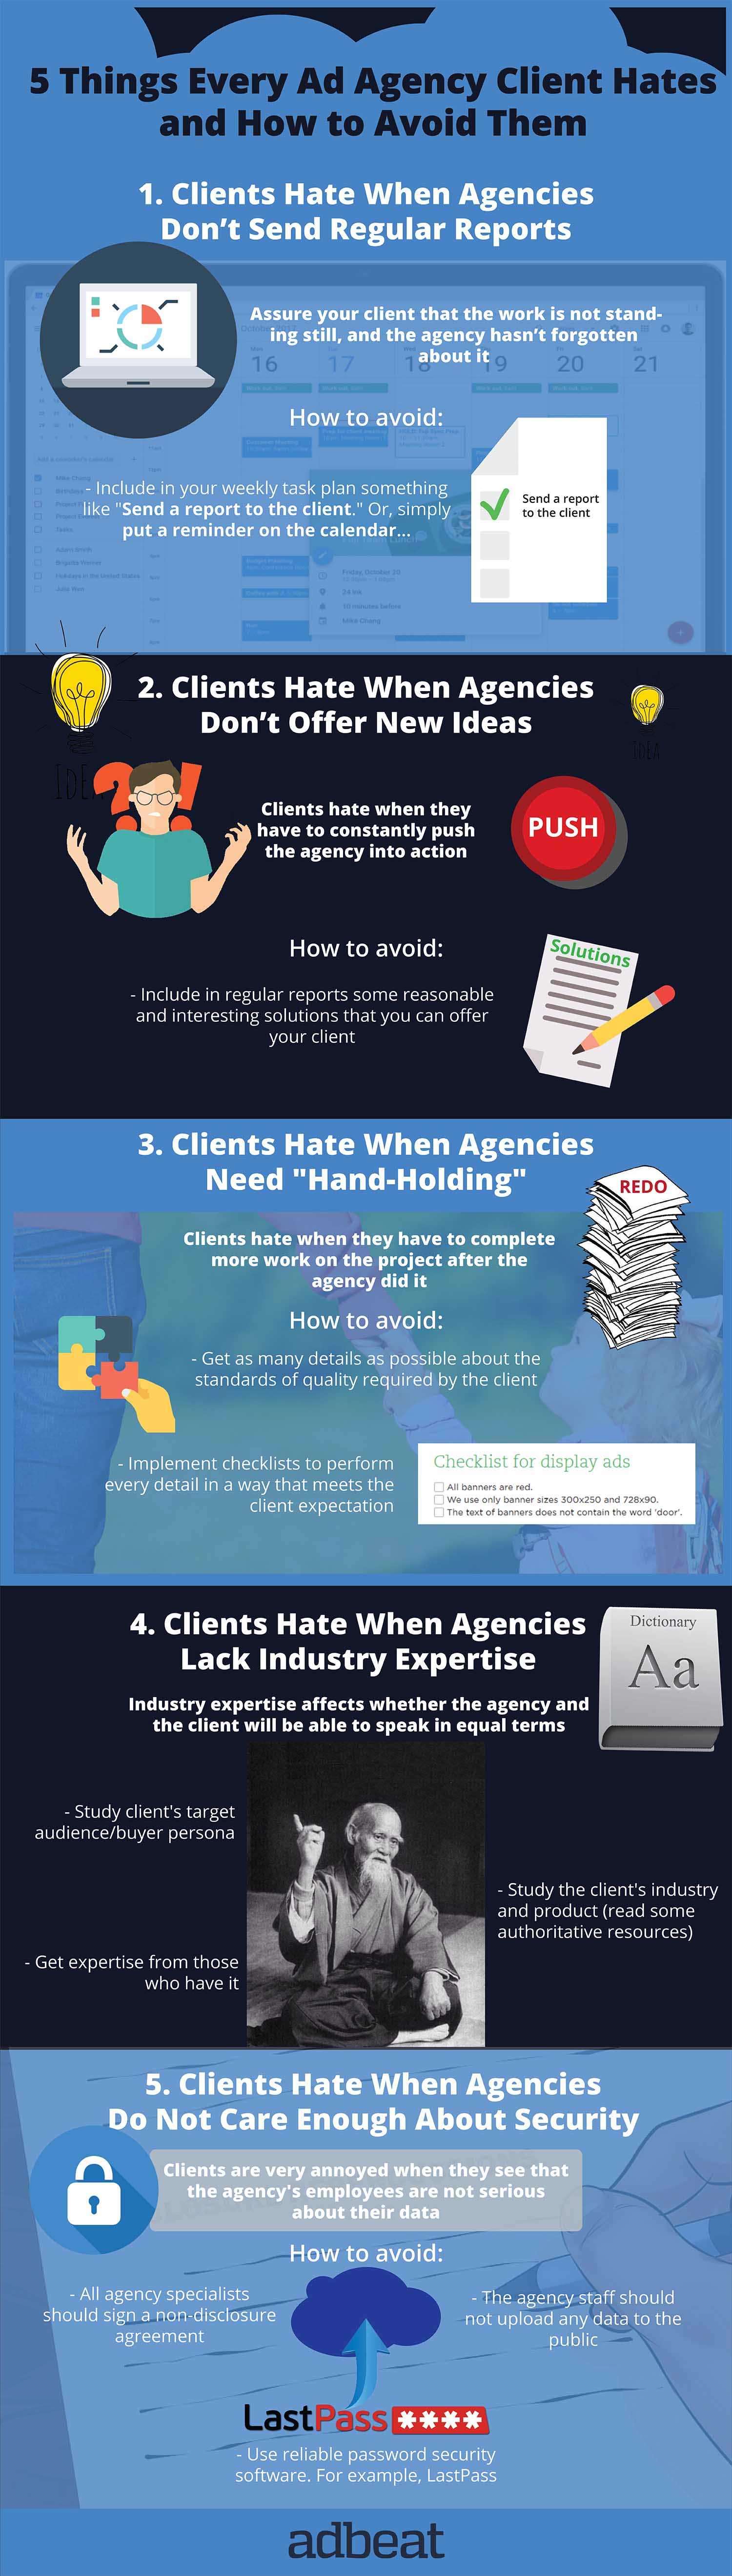 Things That Clients Hate